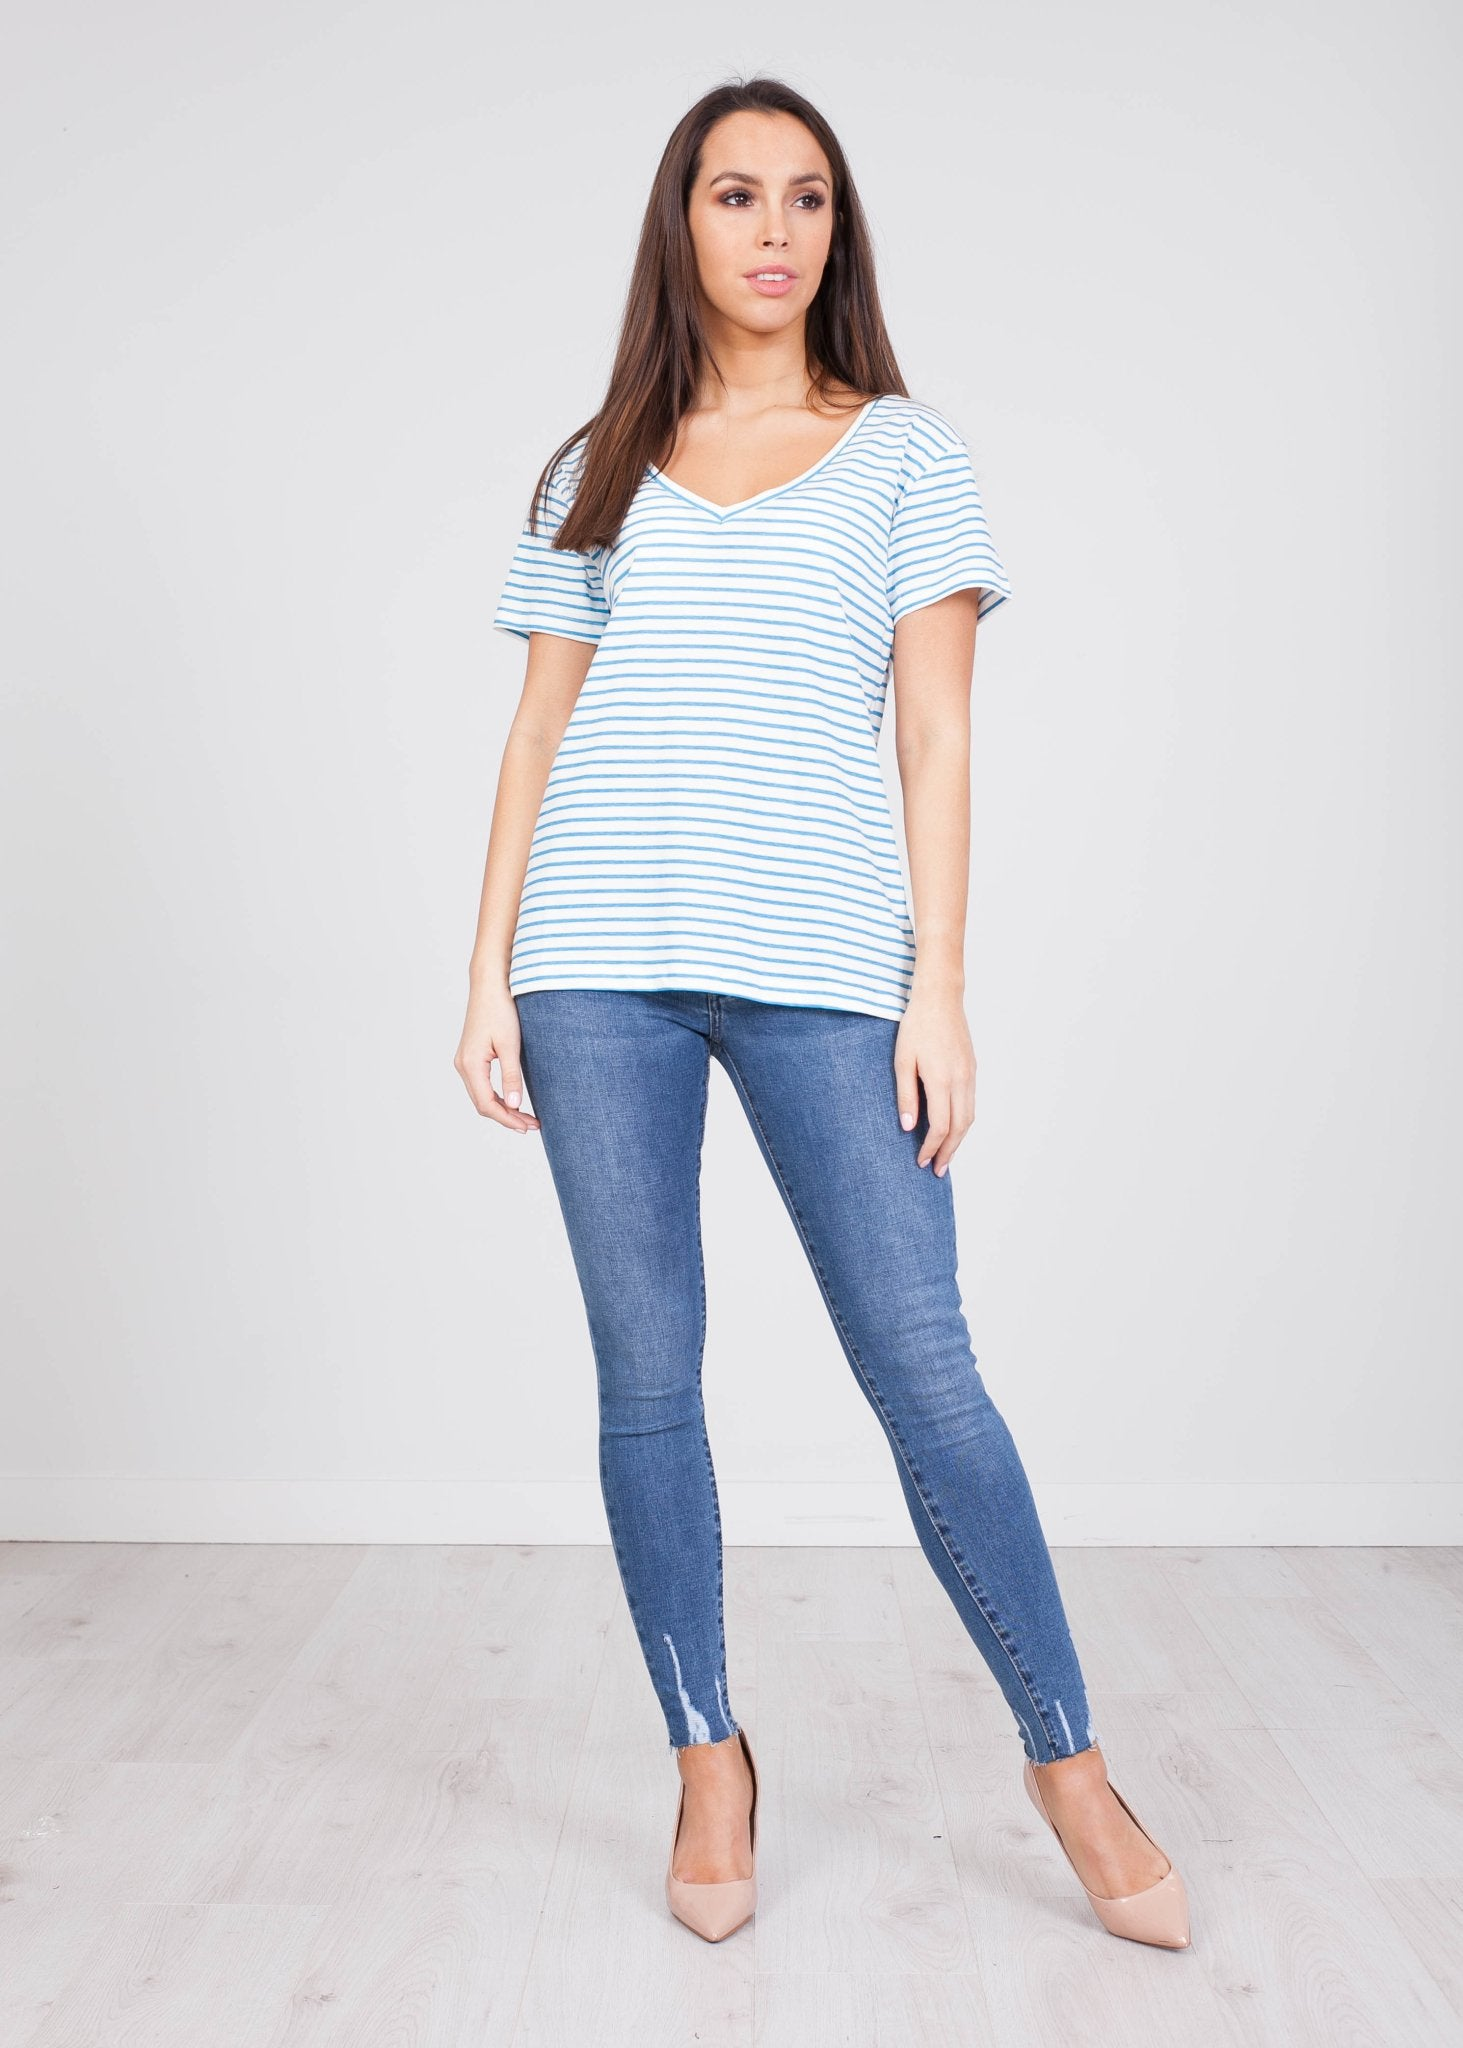 Frankie Blue Stripe T-Shirt - The Walk in Wardrobe